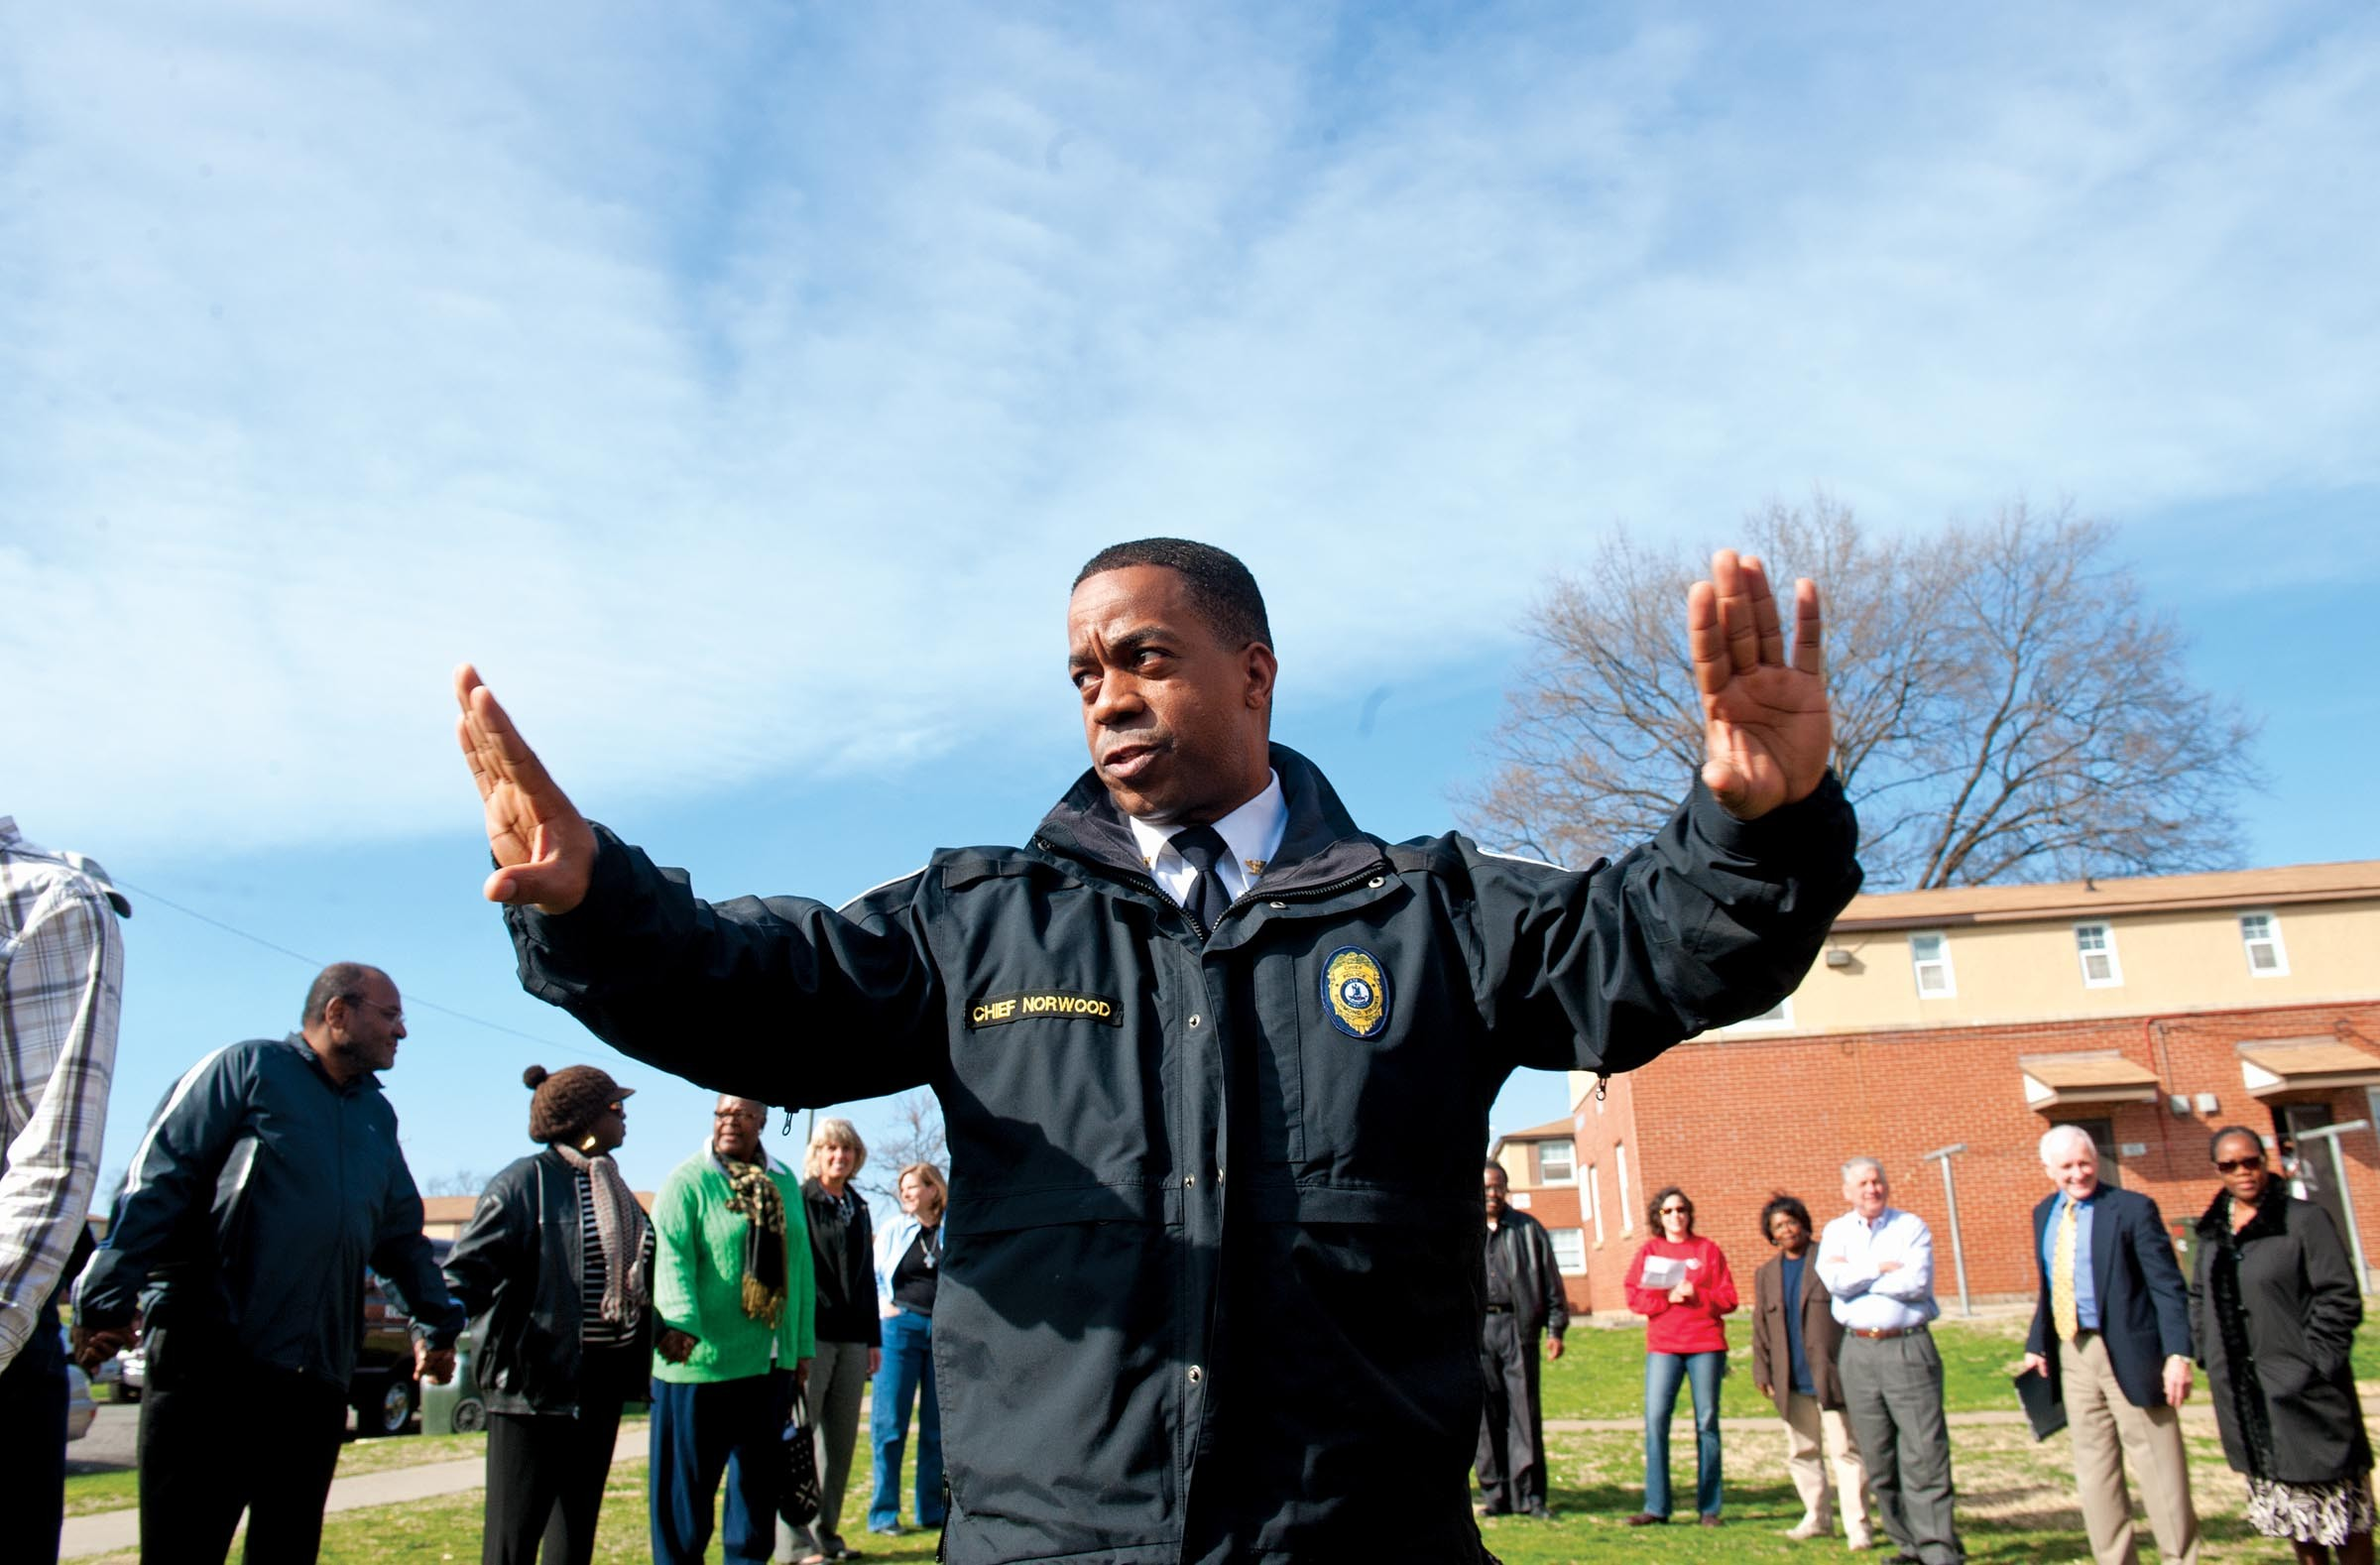 After a rash of slayings in Hillside Court early last year, Police Chief Bryan Norwood led a healing session with residents and officials. - SCOTT ELMQUIST